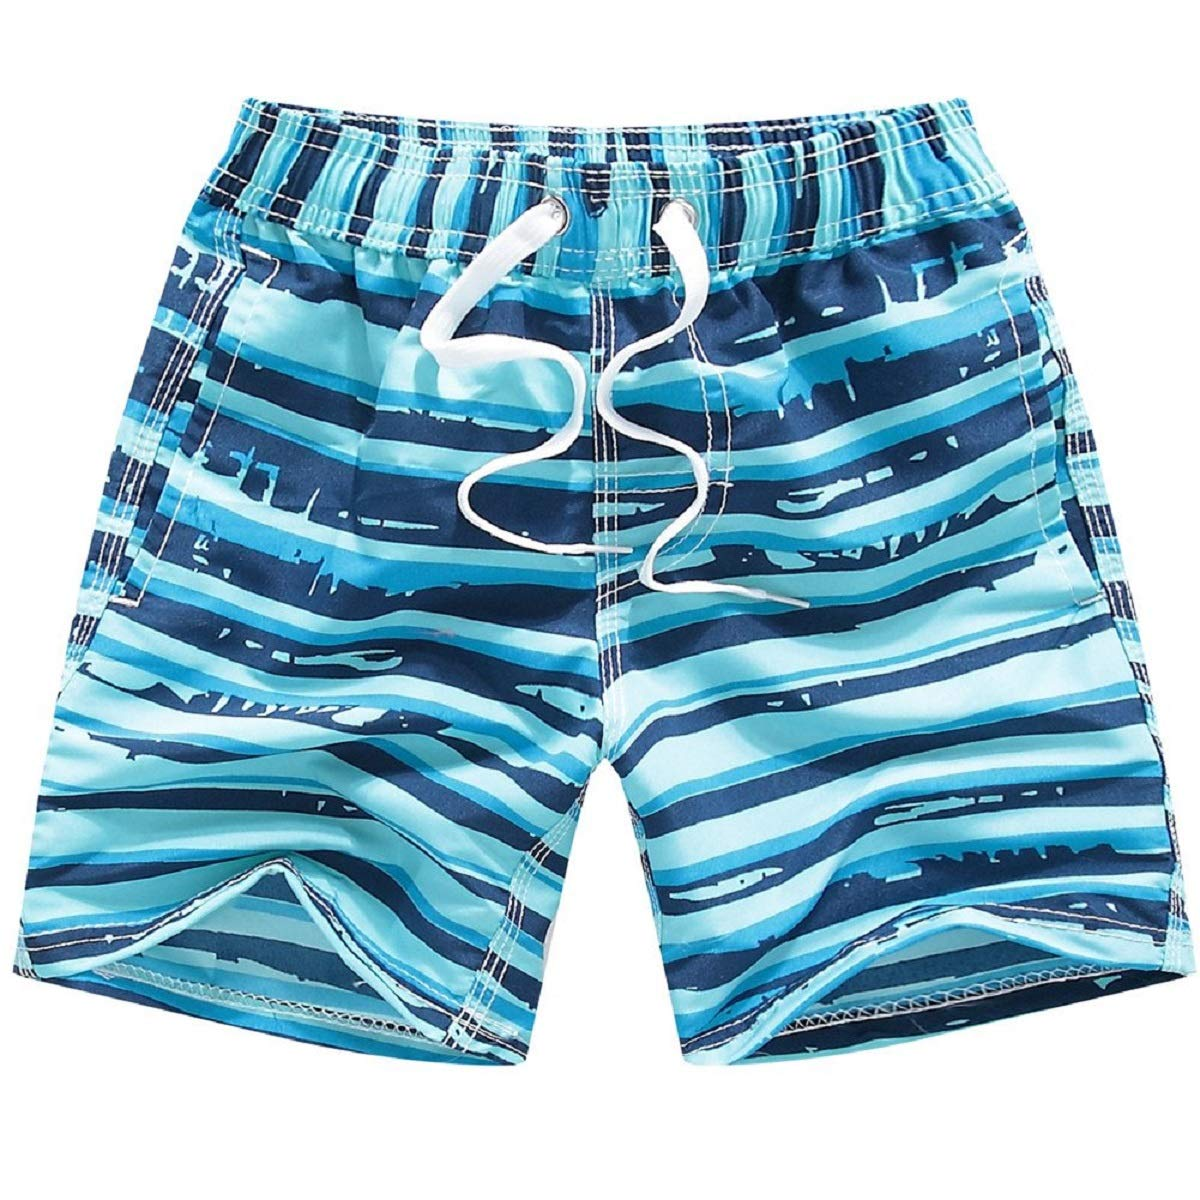 Collager Baby Boys Cute Swim Trunks Kids Quick Dry Beach Water Resistant Board Shorts Little Boy Swim Suit